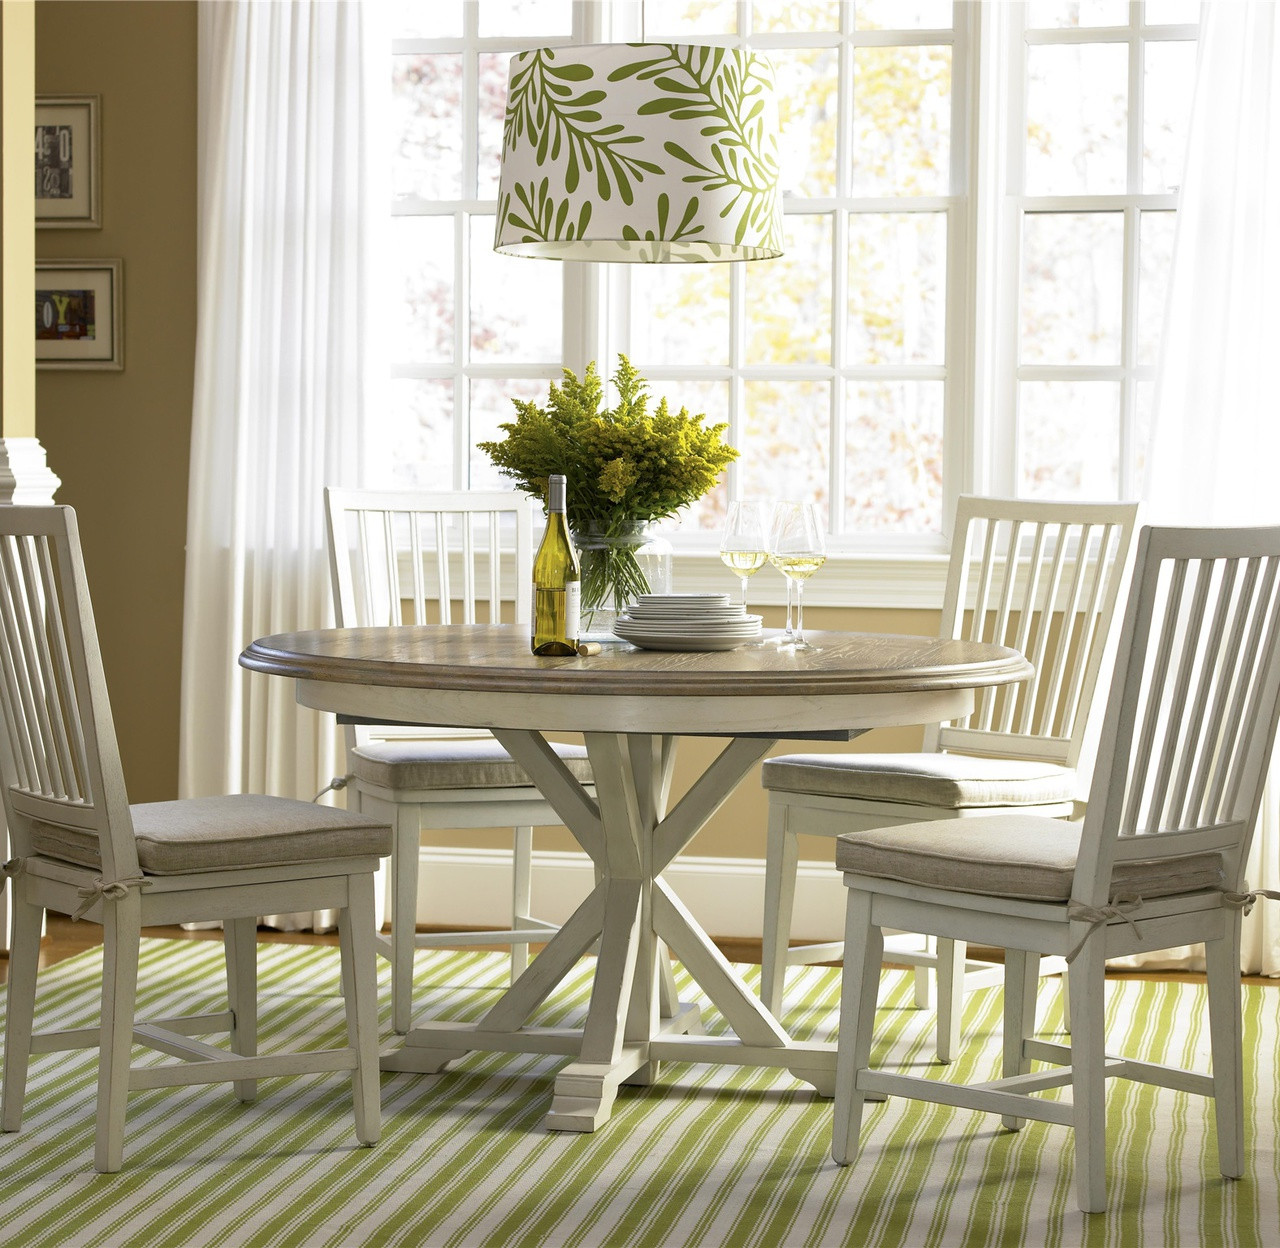 White Dining Room Chair Coastal Beach White Oak Round Dining Room Set